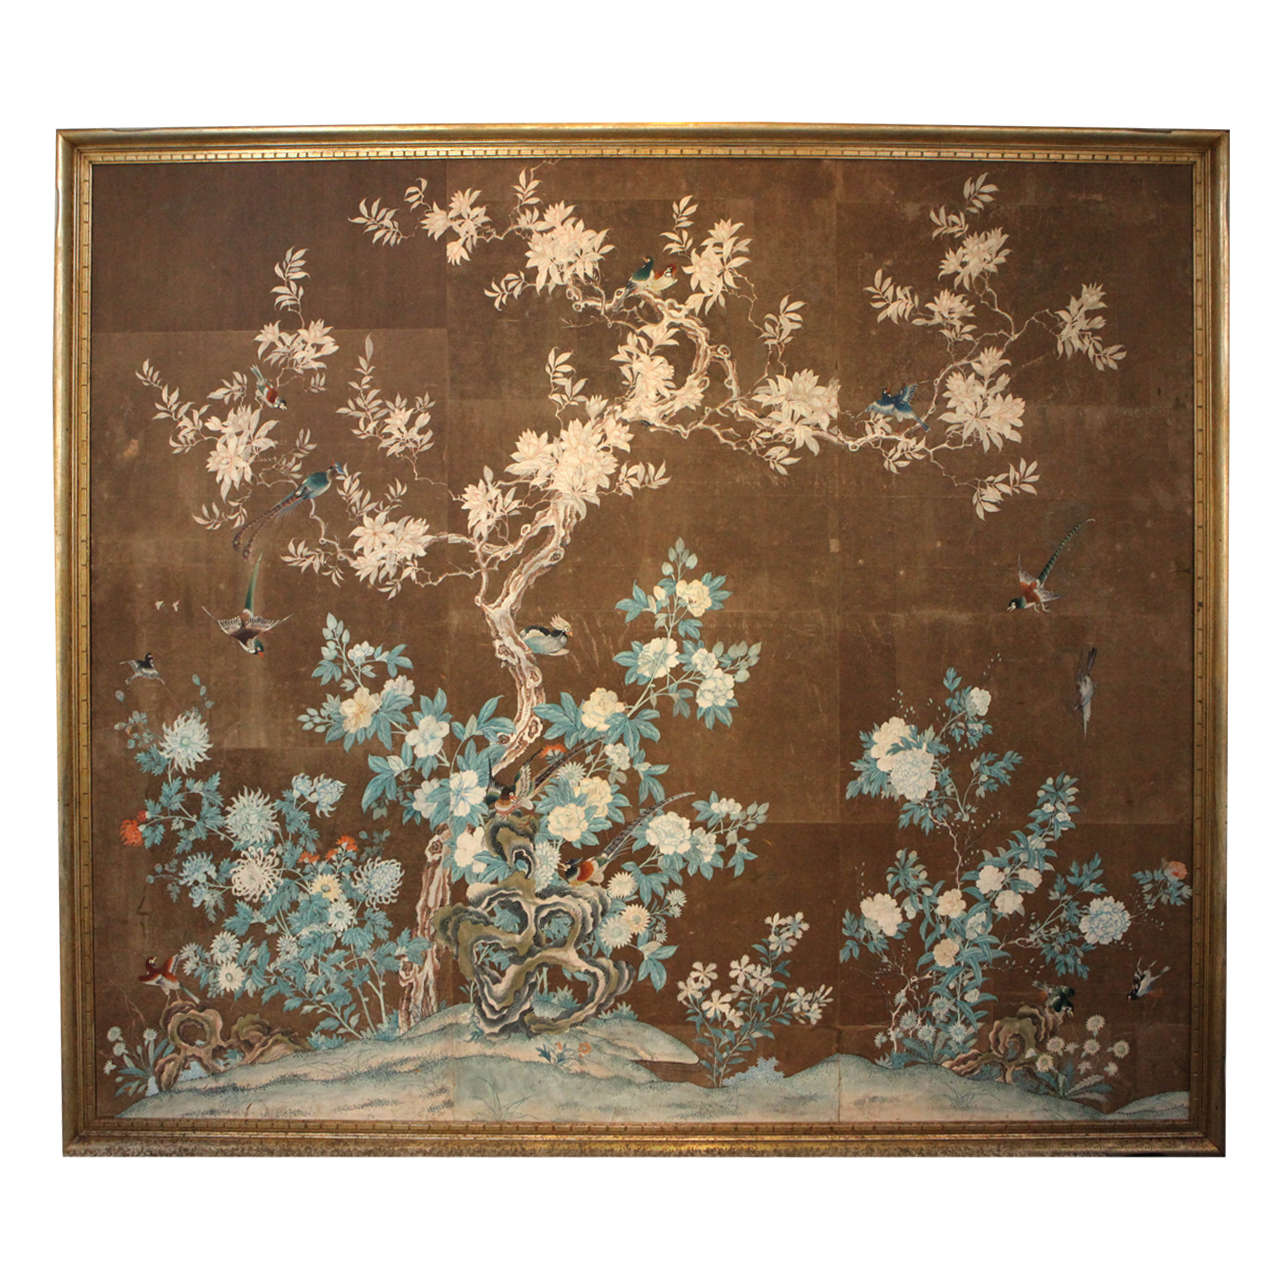 Early 19th Century Chinese Hand Painted Wallpaper Panels at 1stdibs 1280x1280